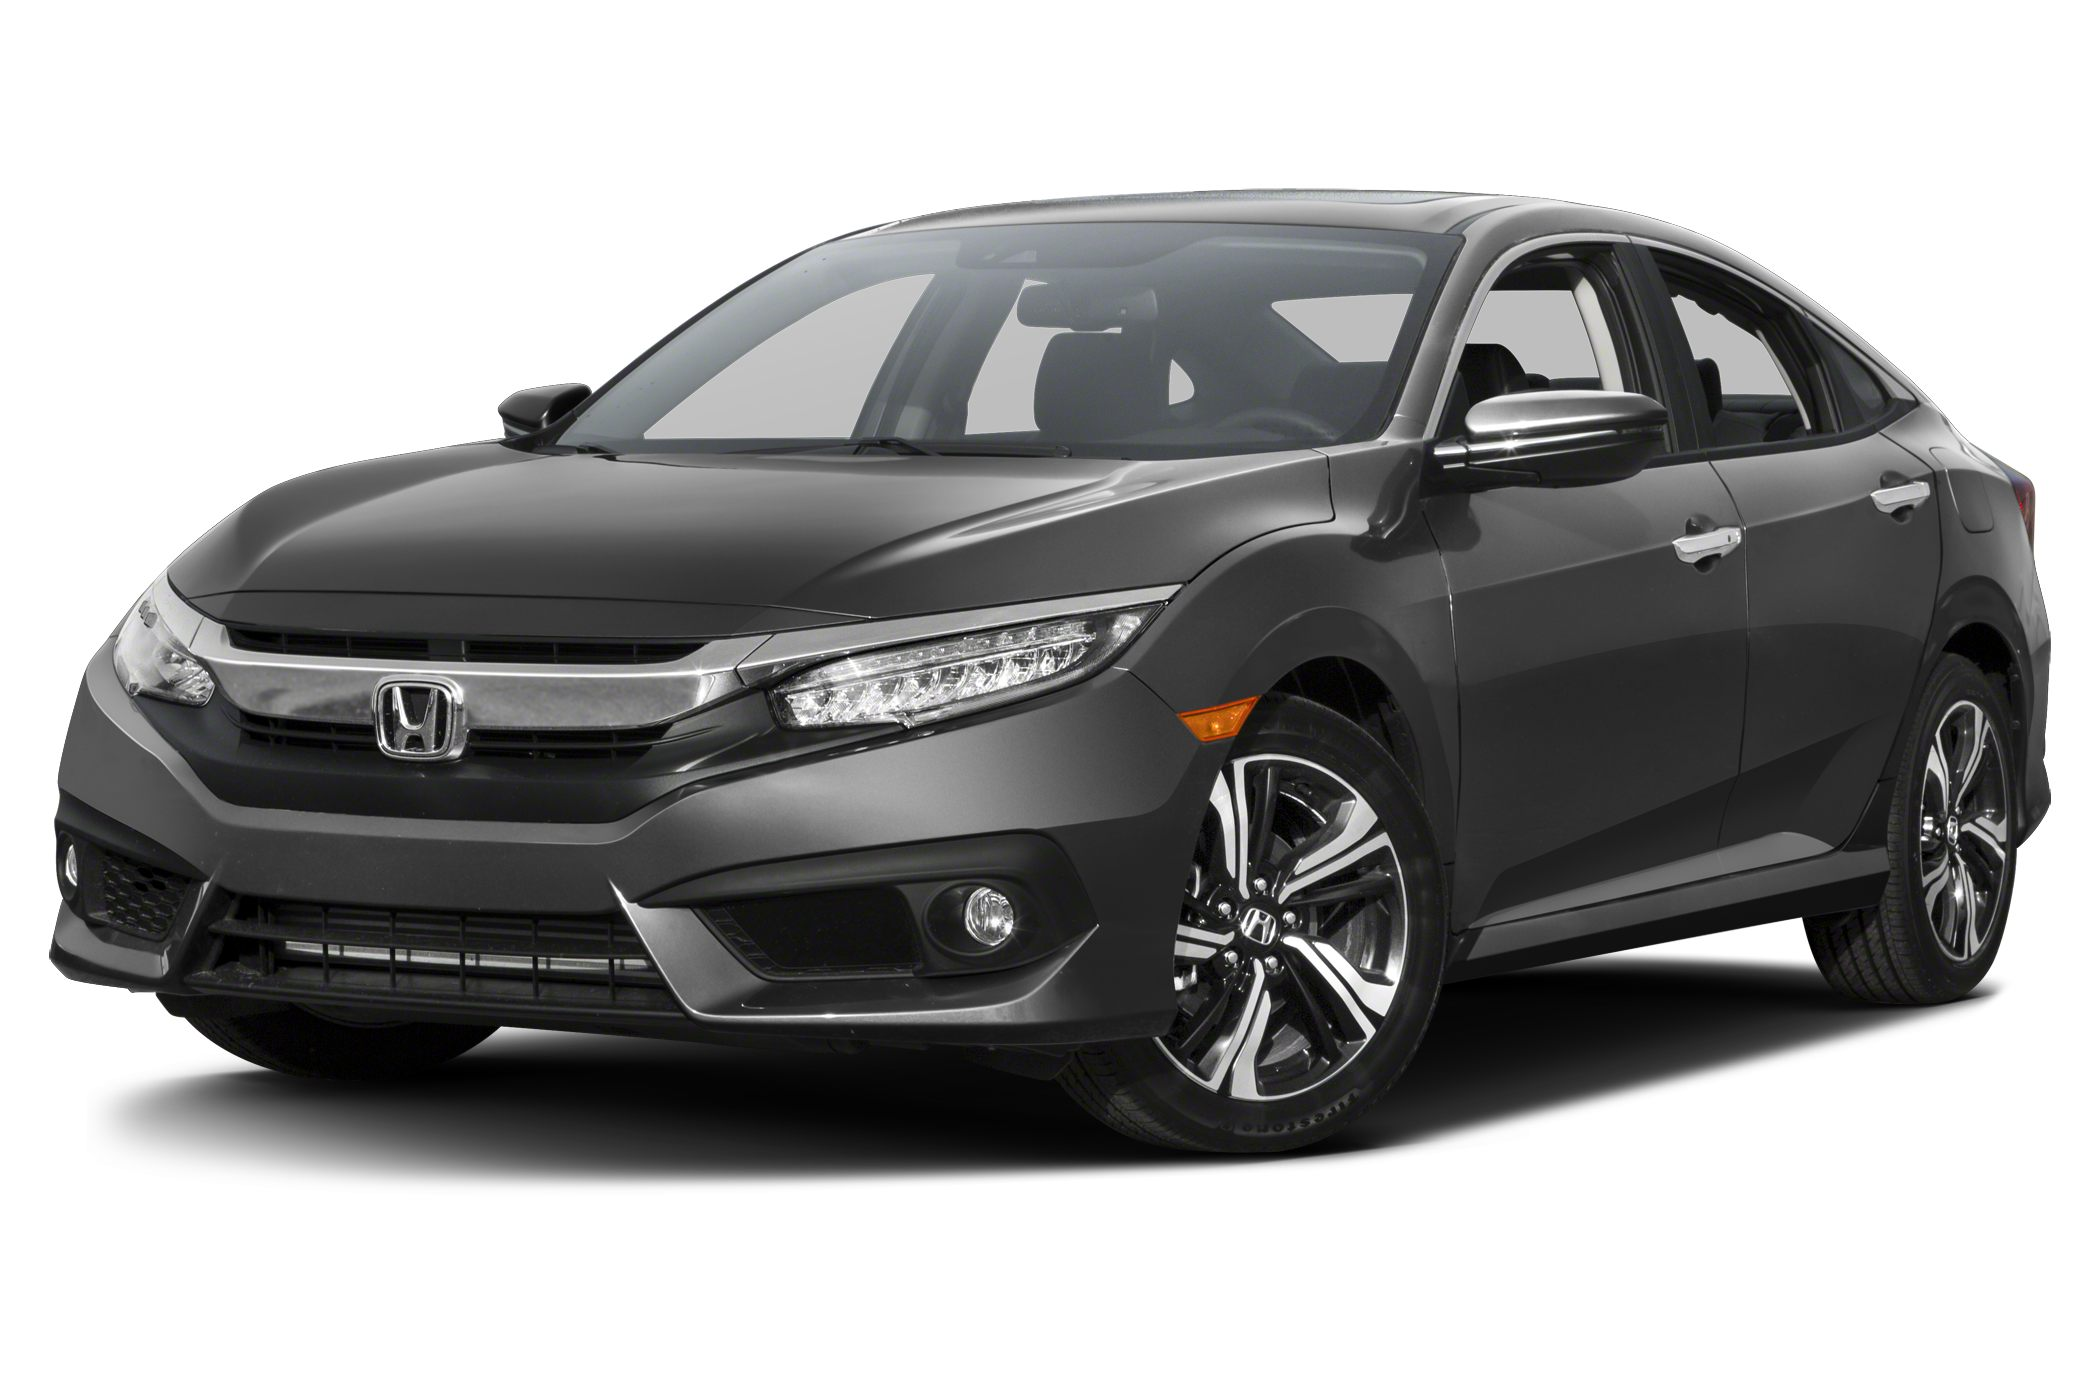 2016 Honda Civic Touring Contact Fenton Honda Of Ardmore today for information on dozens of vehicl